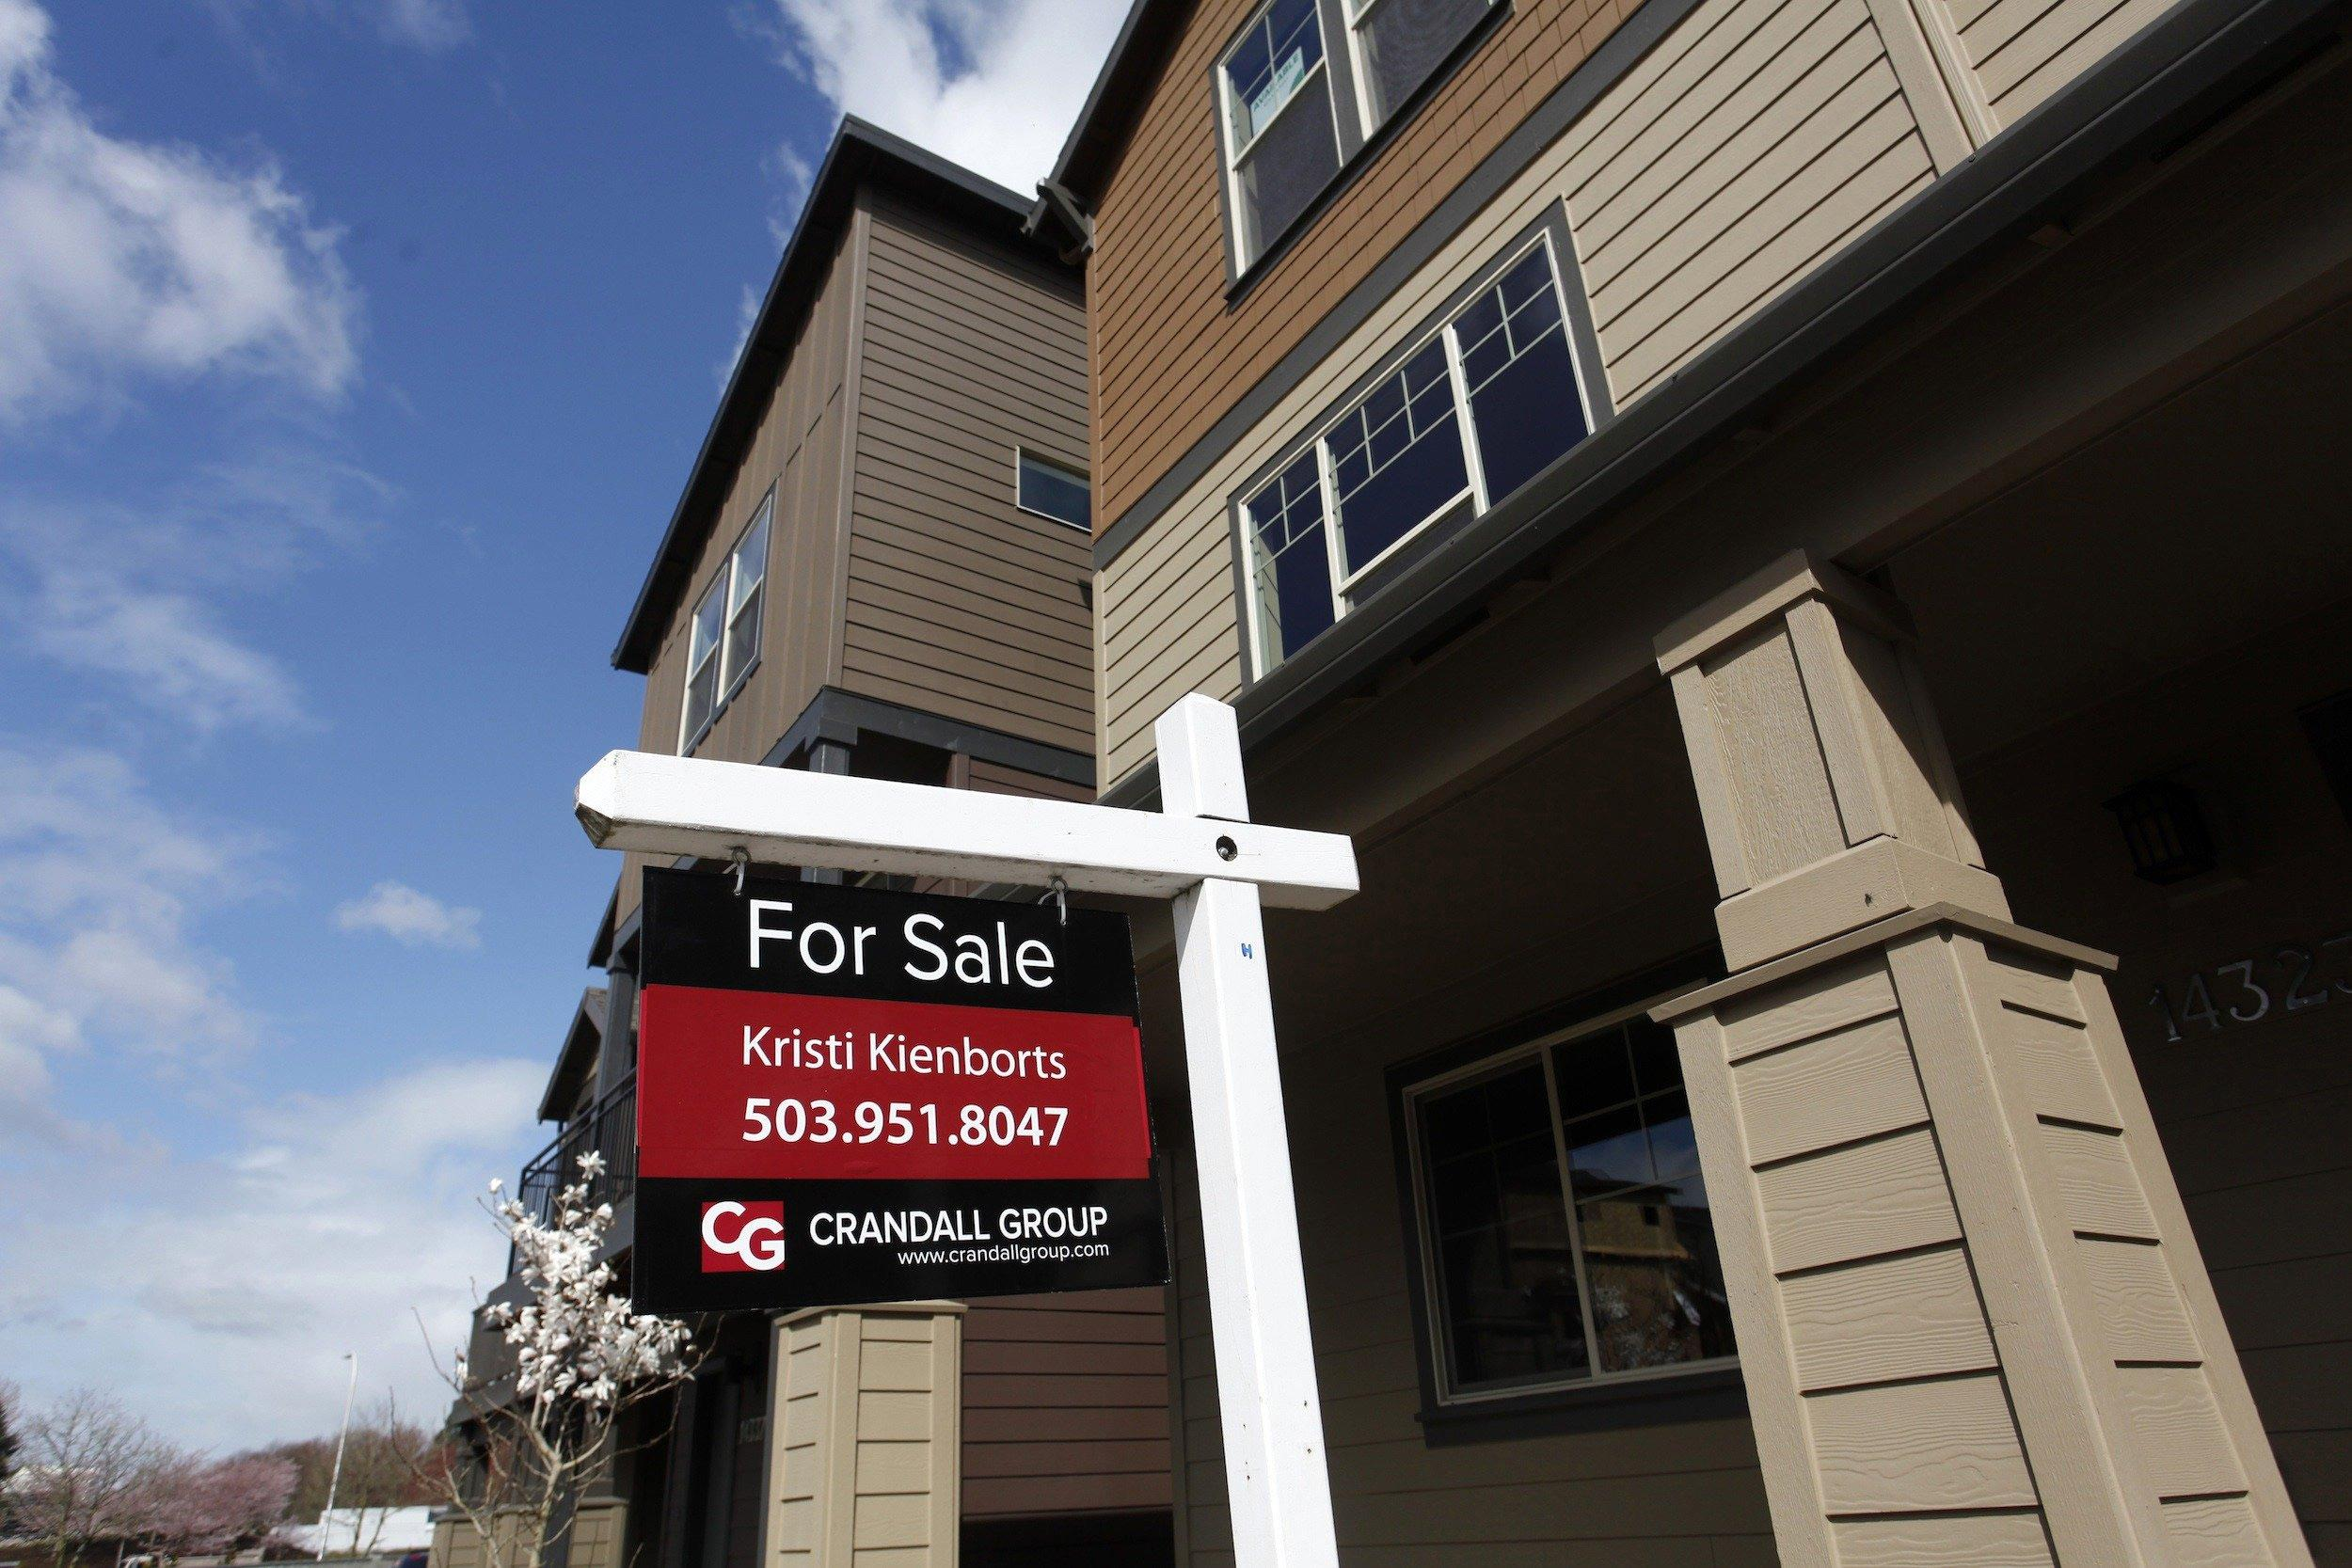 The number of home owners in the U.S. has fallen to its lowest in 19 years.